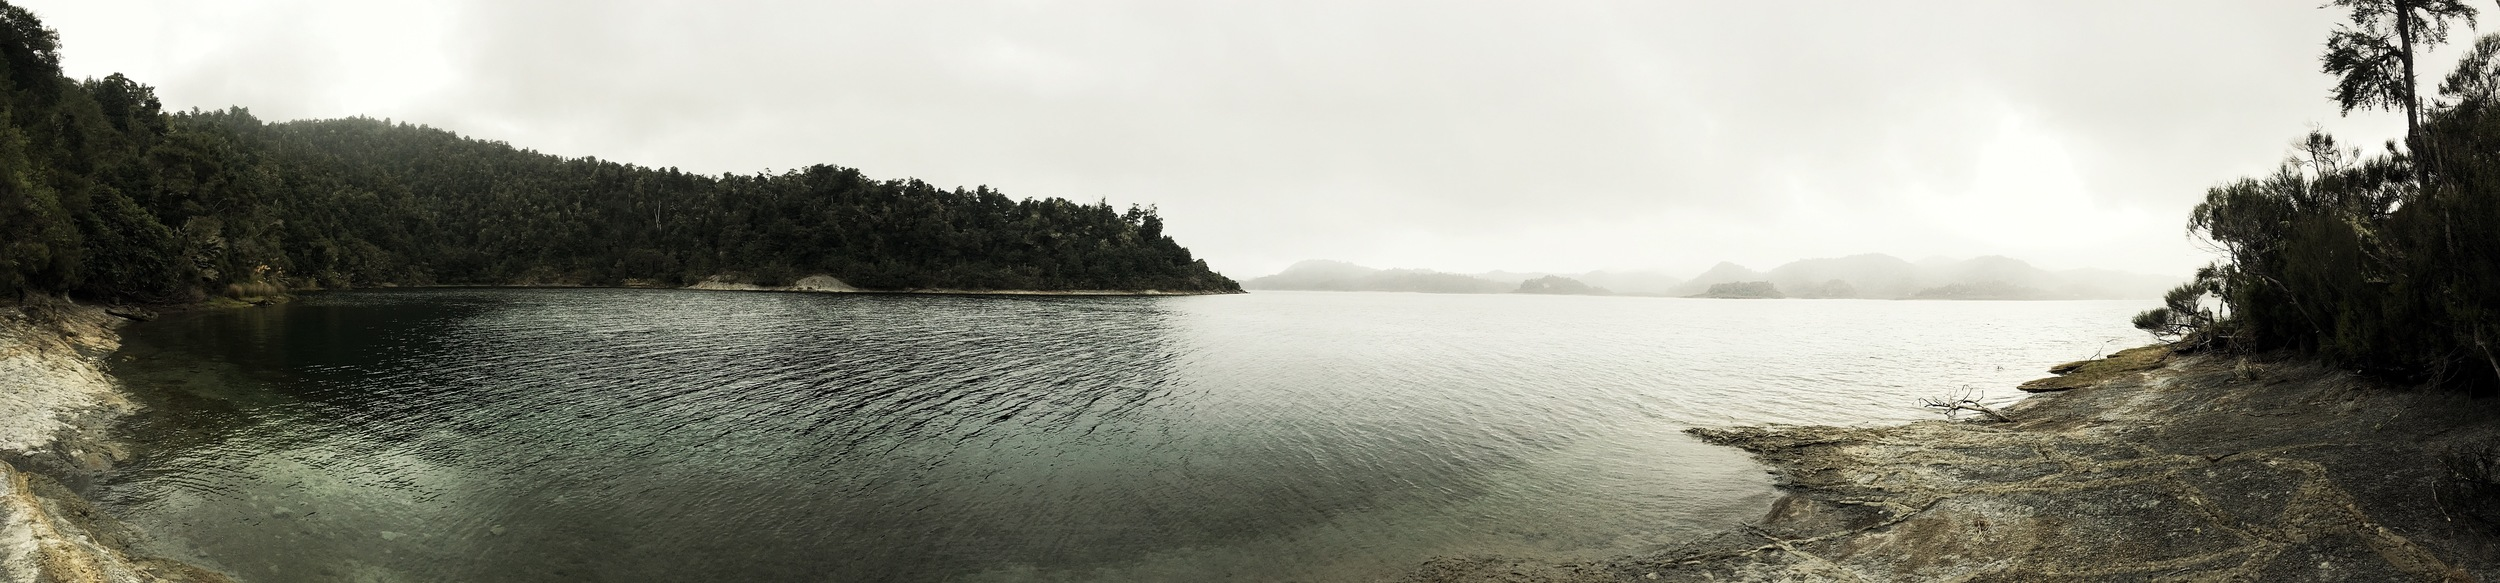 // View of the lake before arriving at our campsite